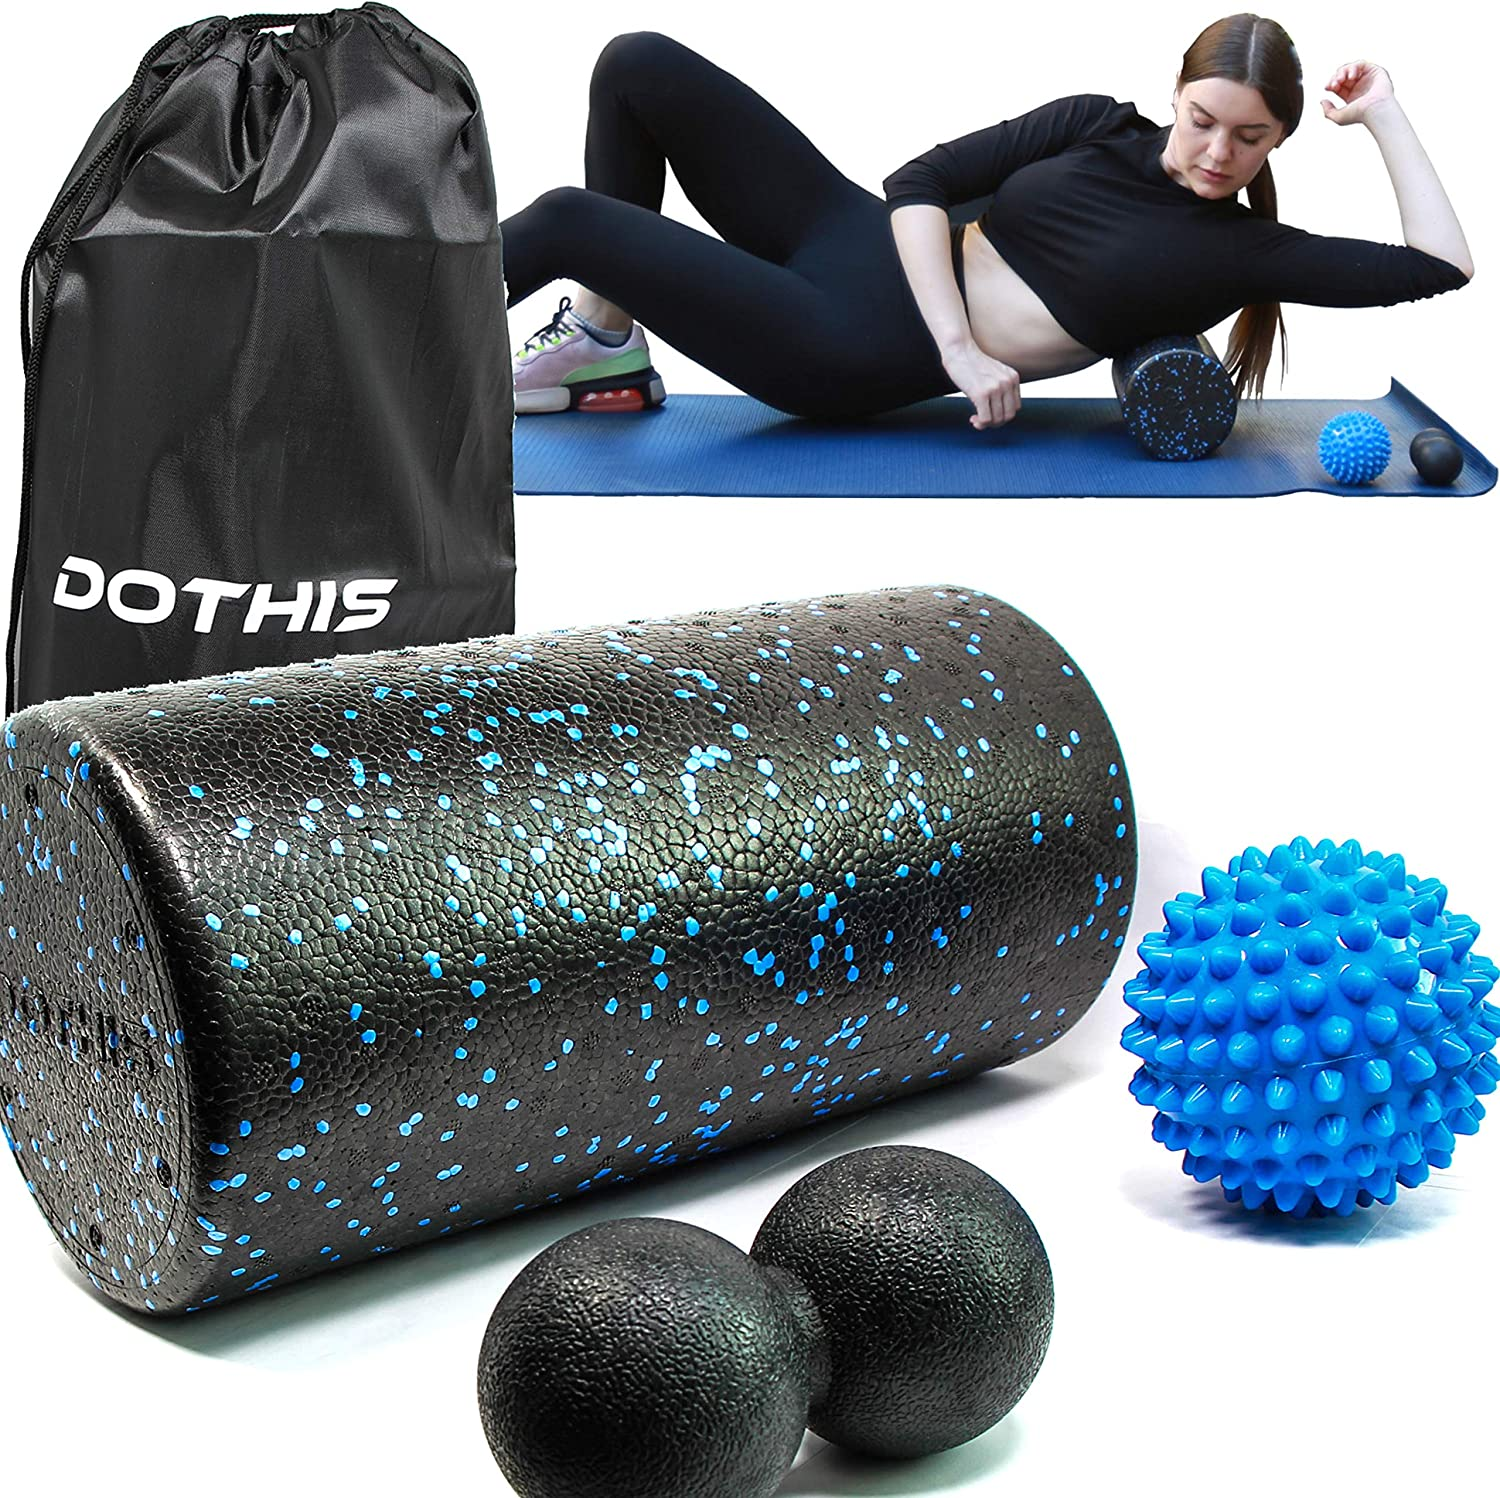 4 in 1 Foam Roller with Spiky Ball Massage - Back-Rol and Chicago Mall service Peanut